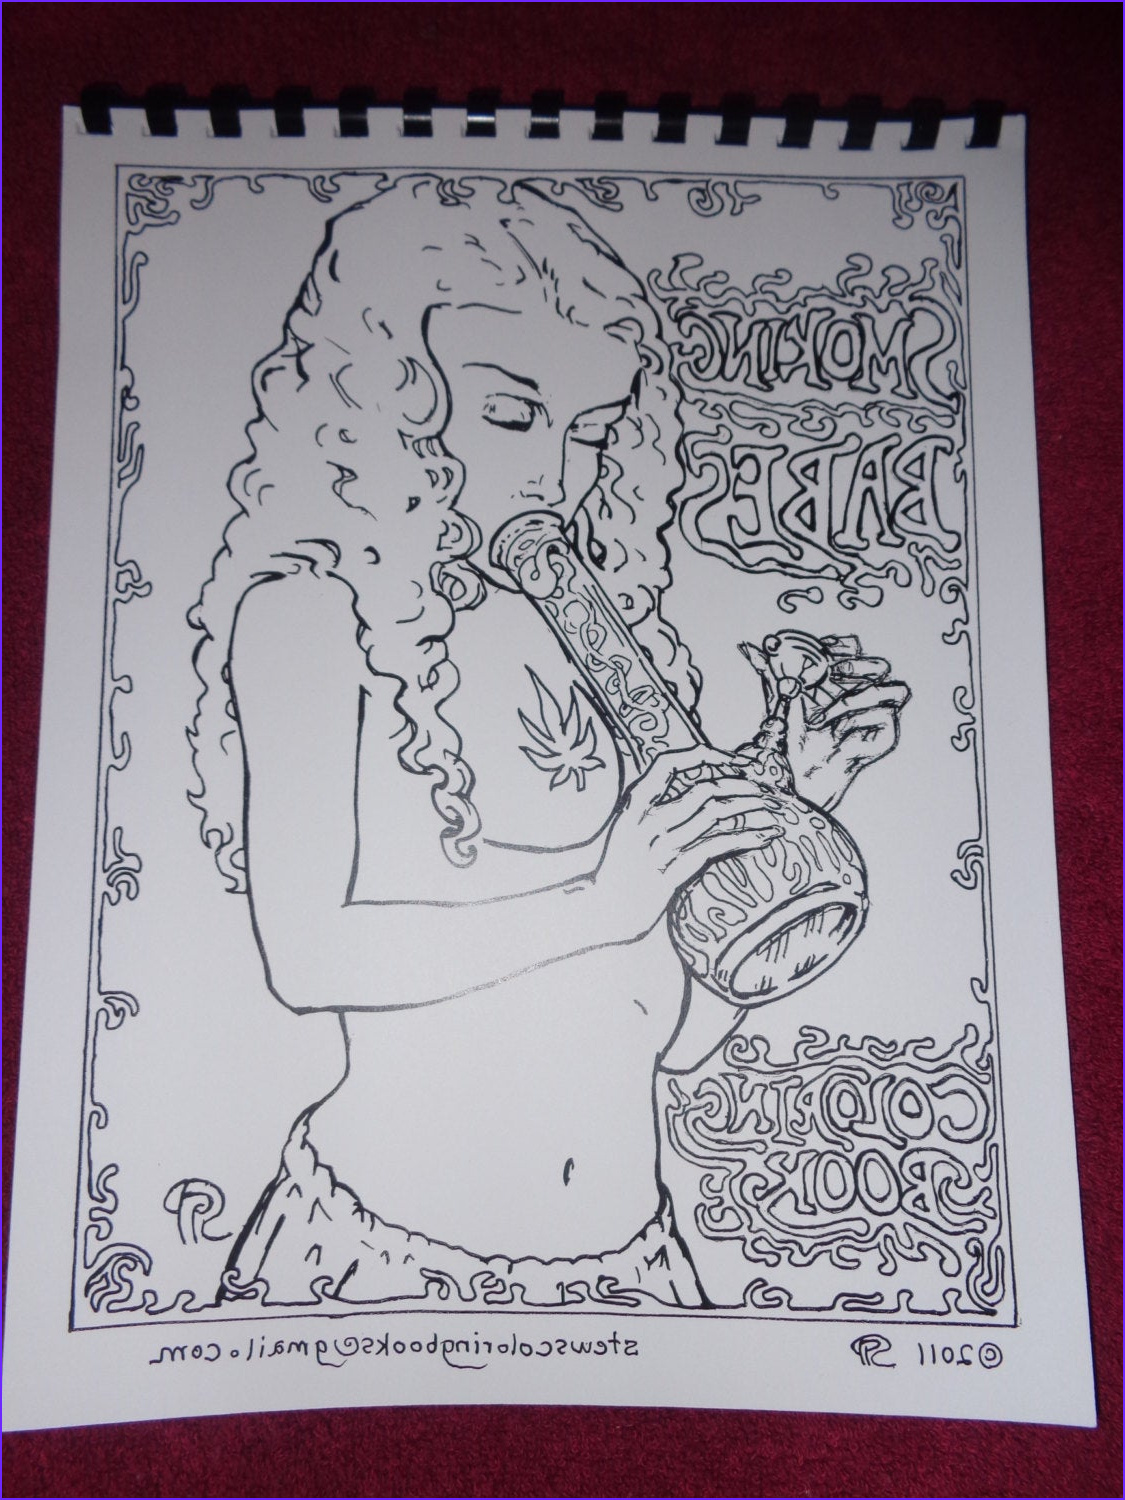 Adult themed Coloring Books Best Of Photos Smoking Babes Babes and Bongs themed Adult by Stewartprather